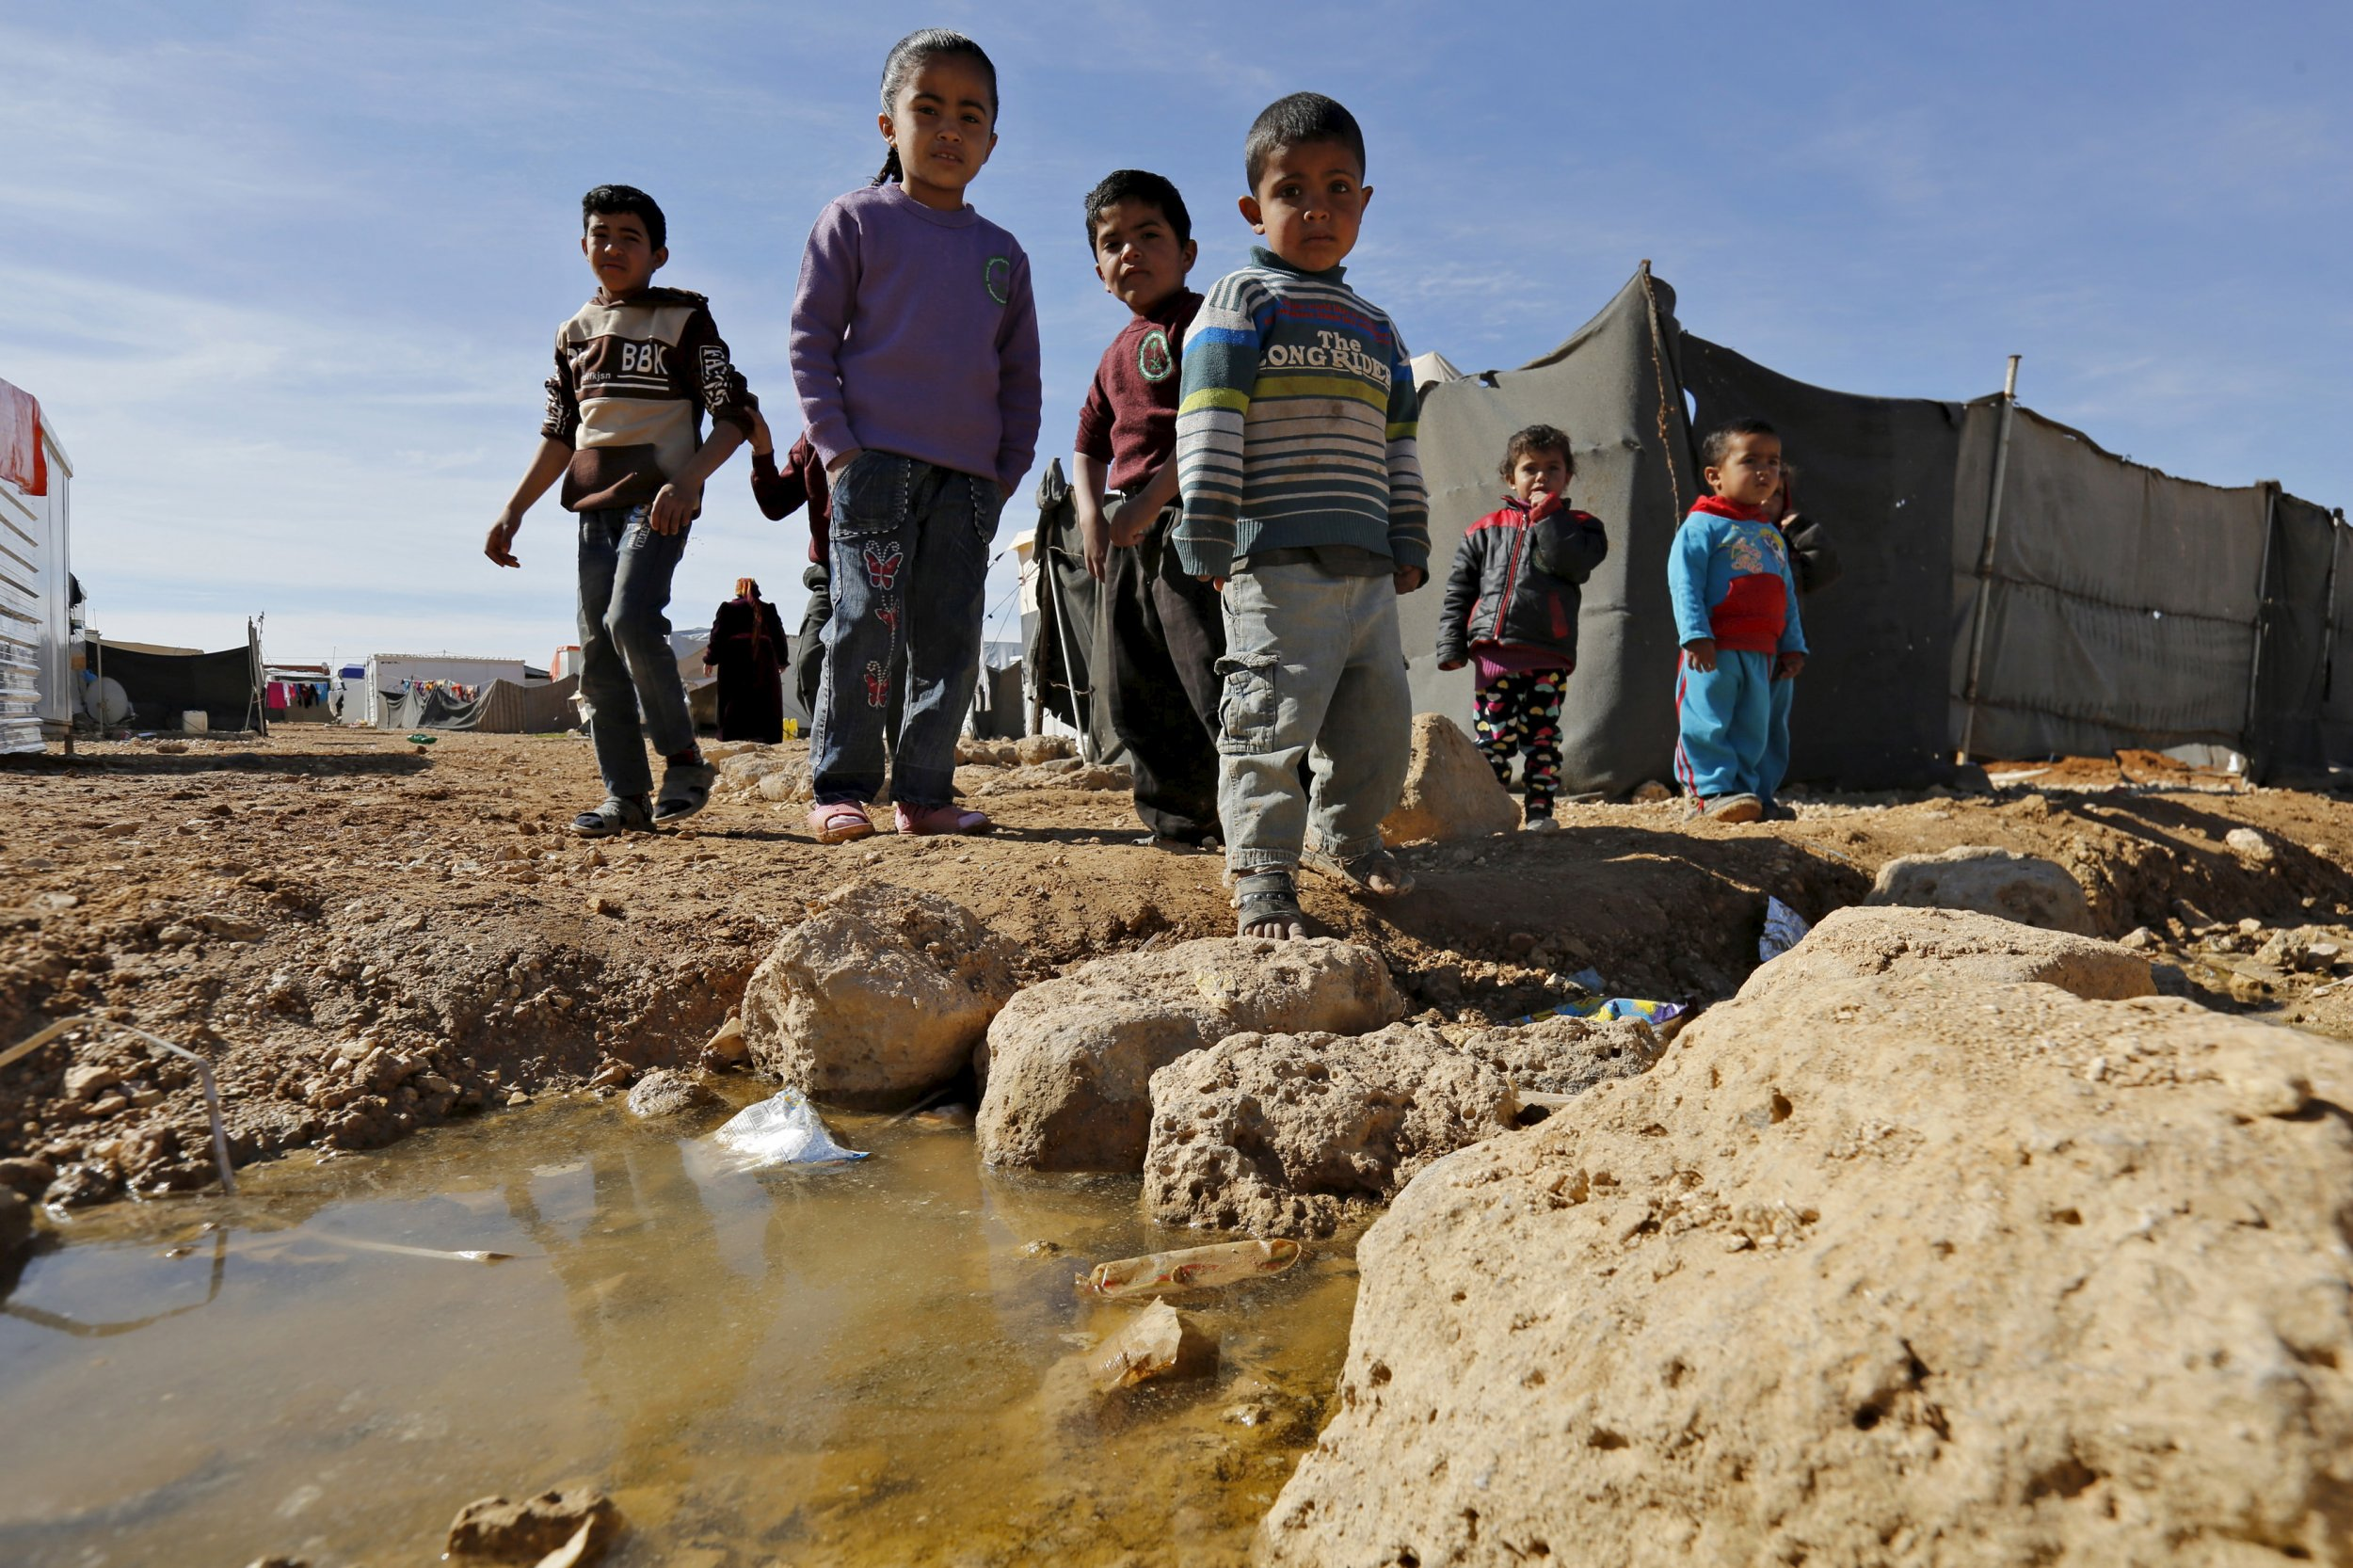 syria refugee crisis The syrian refugee crisis needs to be handled in a way that addresses both compassion and security.